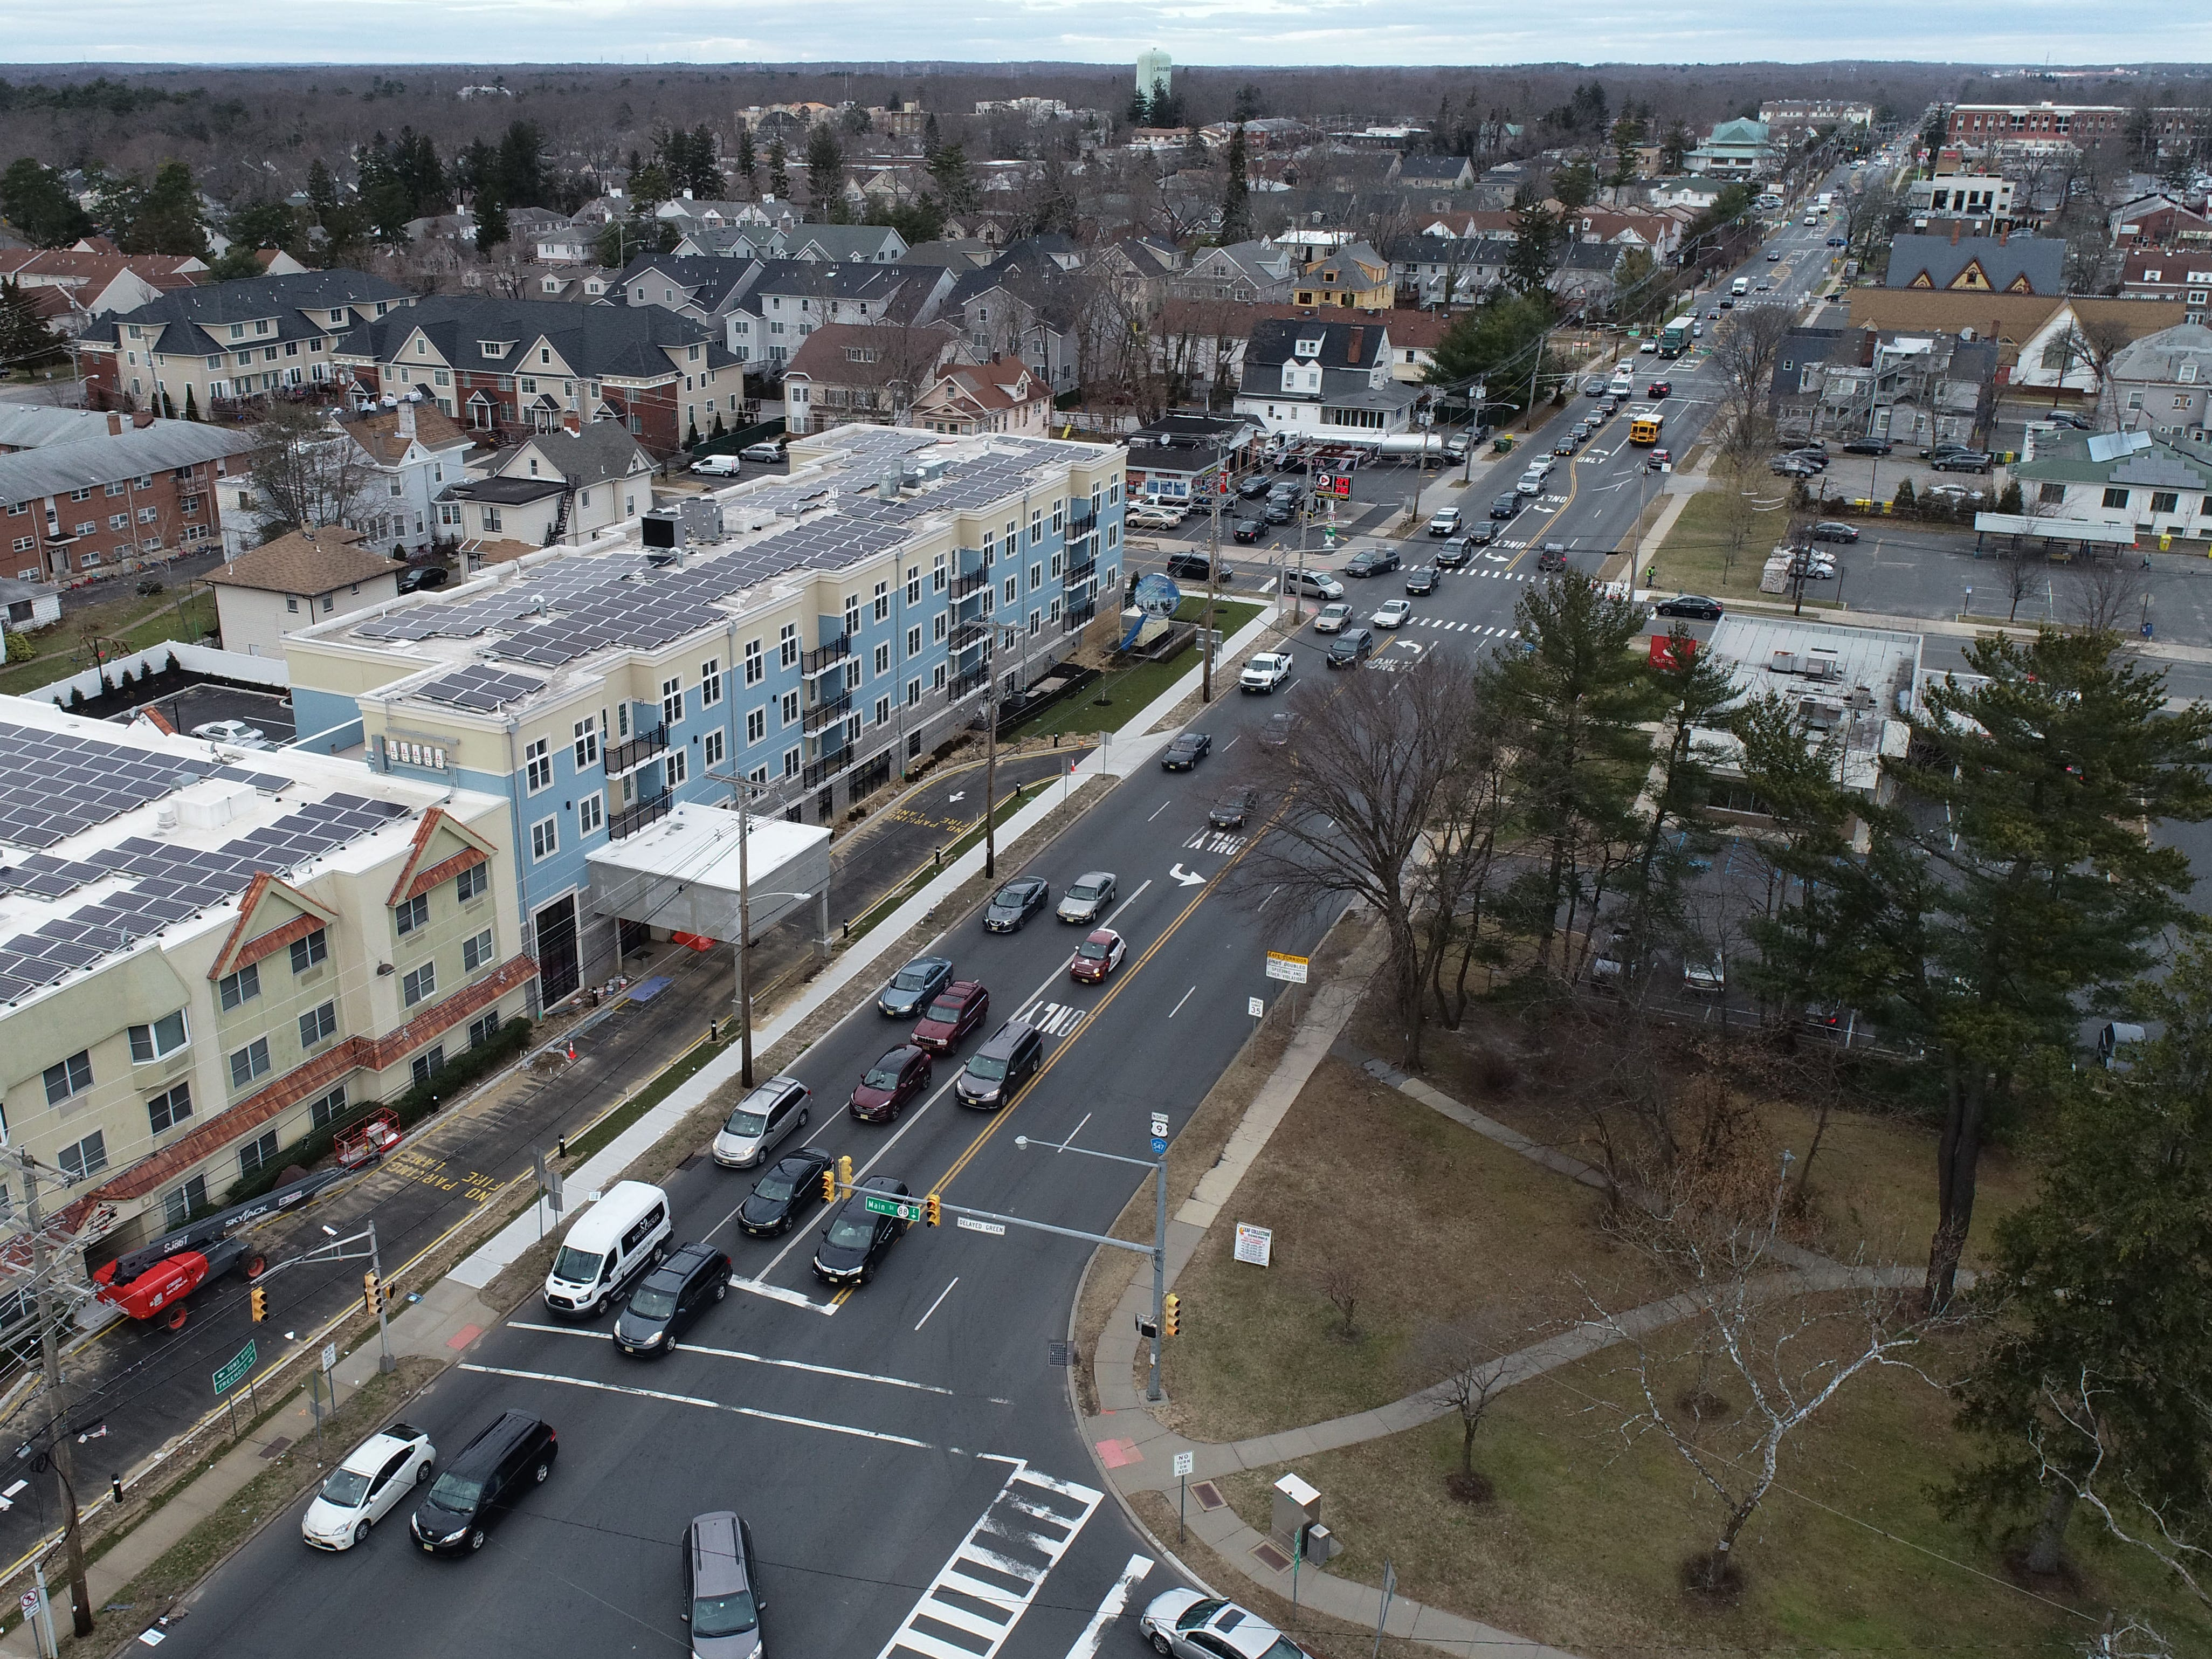 Aerial view of Lakewood looking north along Route 9 from the intersection with Route 88 Thursday, January 3, 2019.